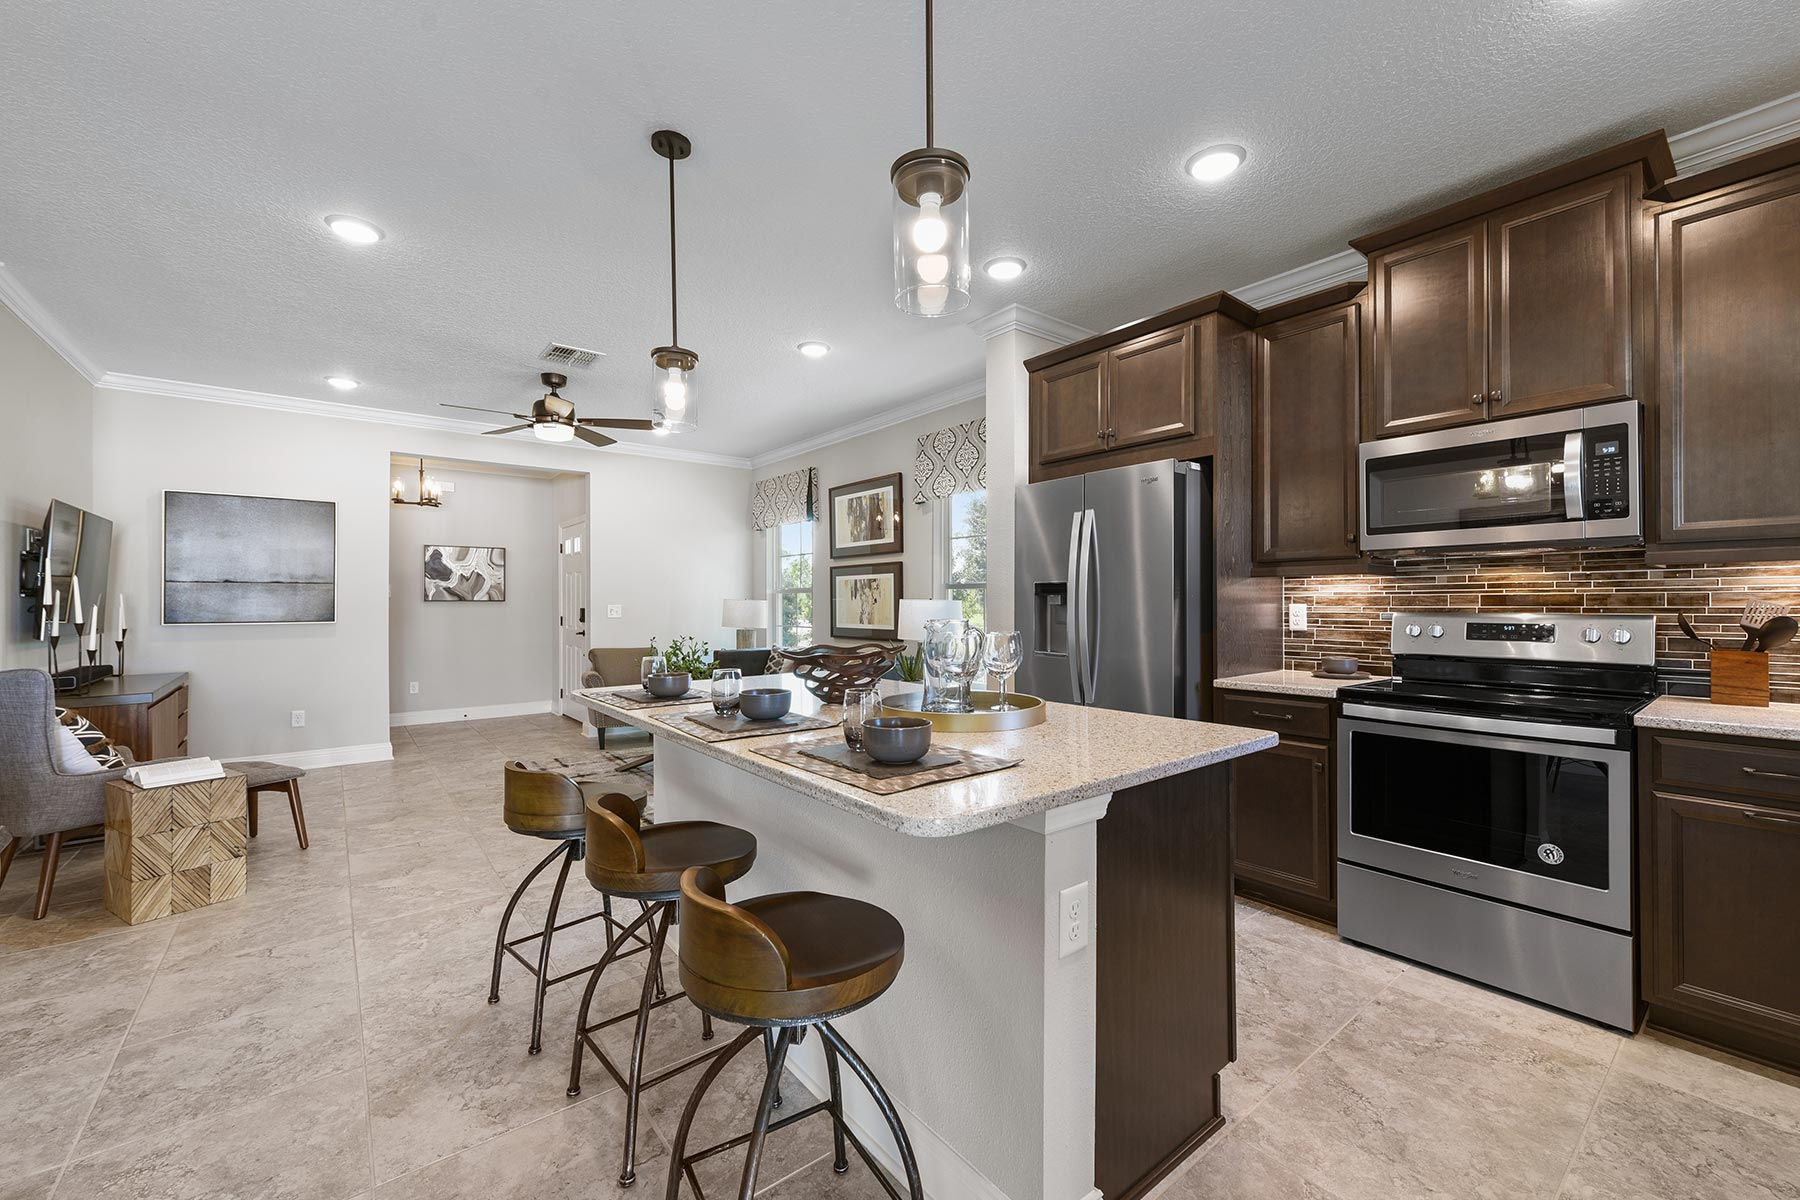 Spring Plan Kitchen at Wells Creek in Jacksonville Florida by Mattamy Homes